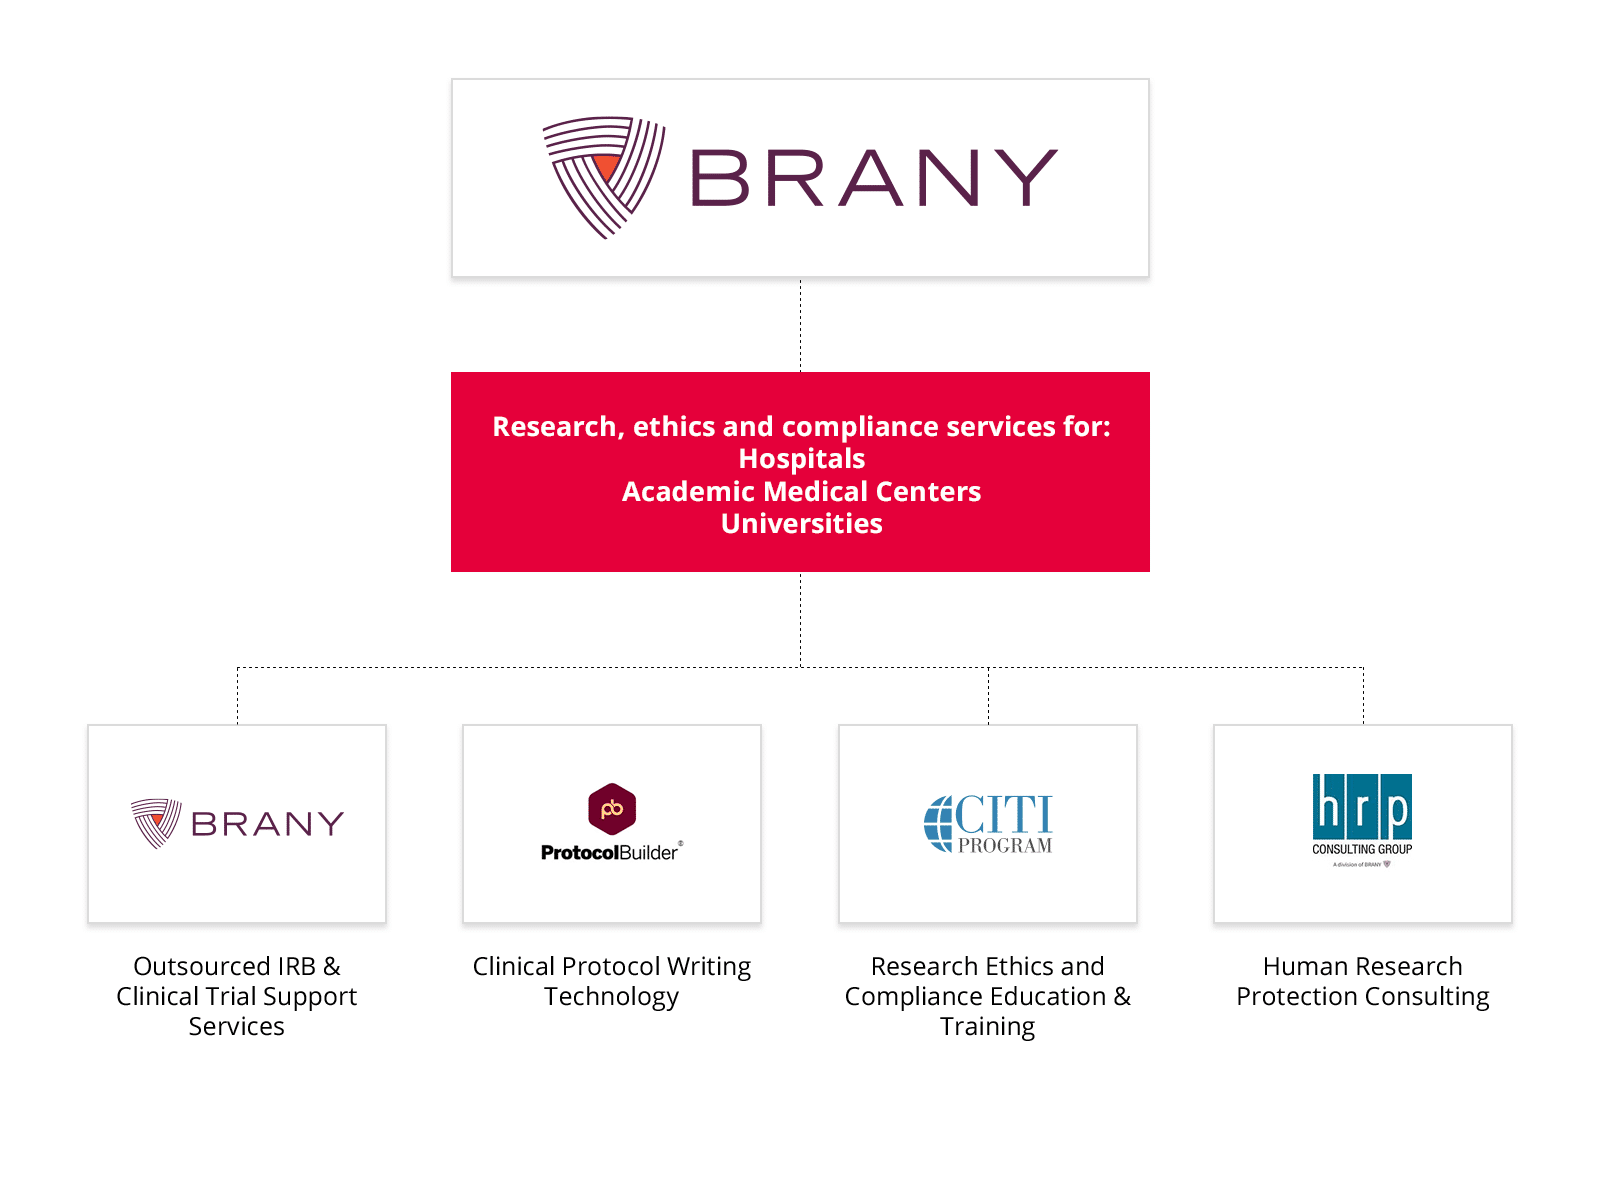 Corporate Overview – Brany